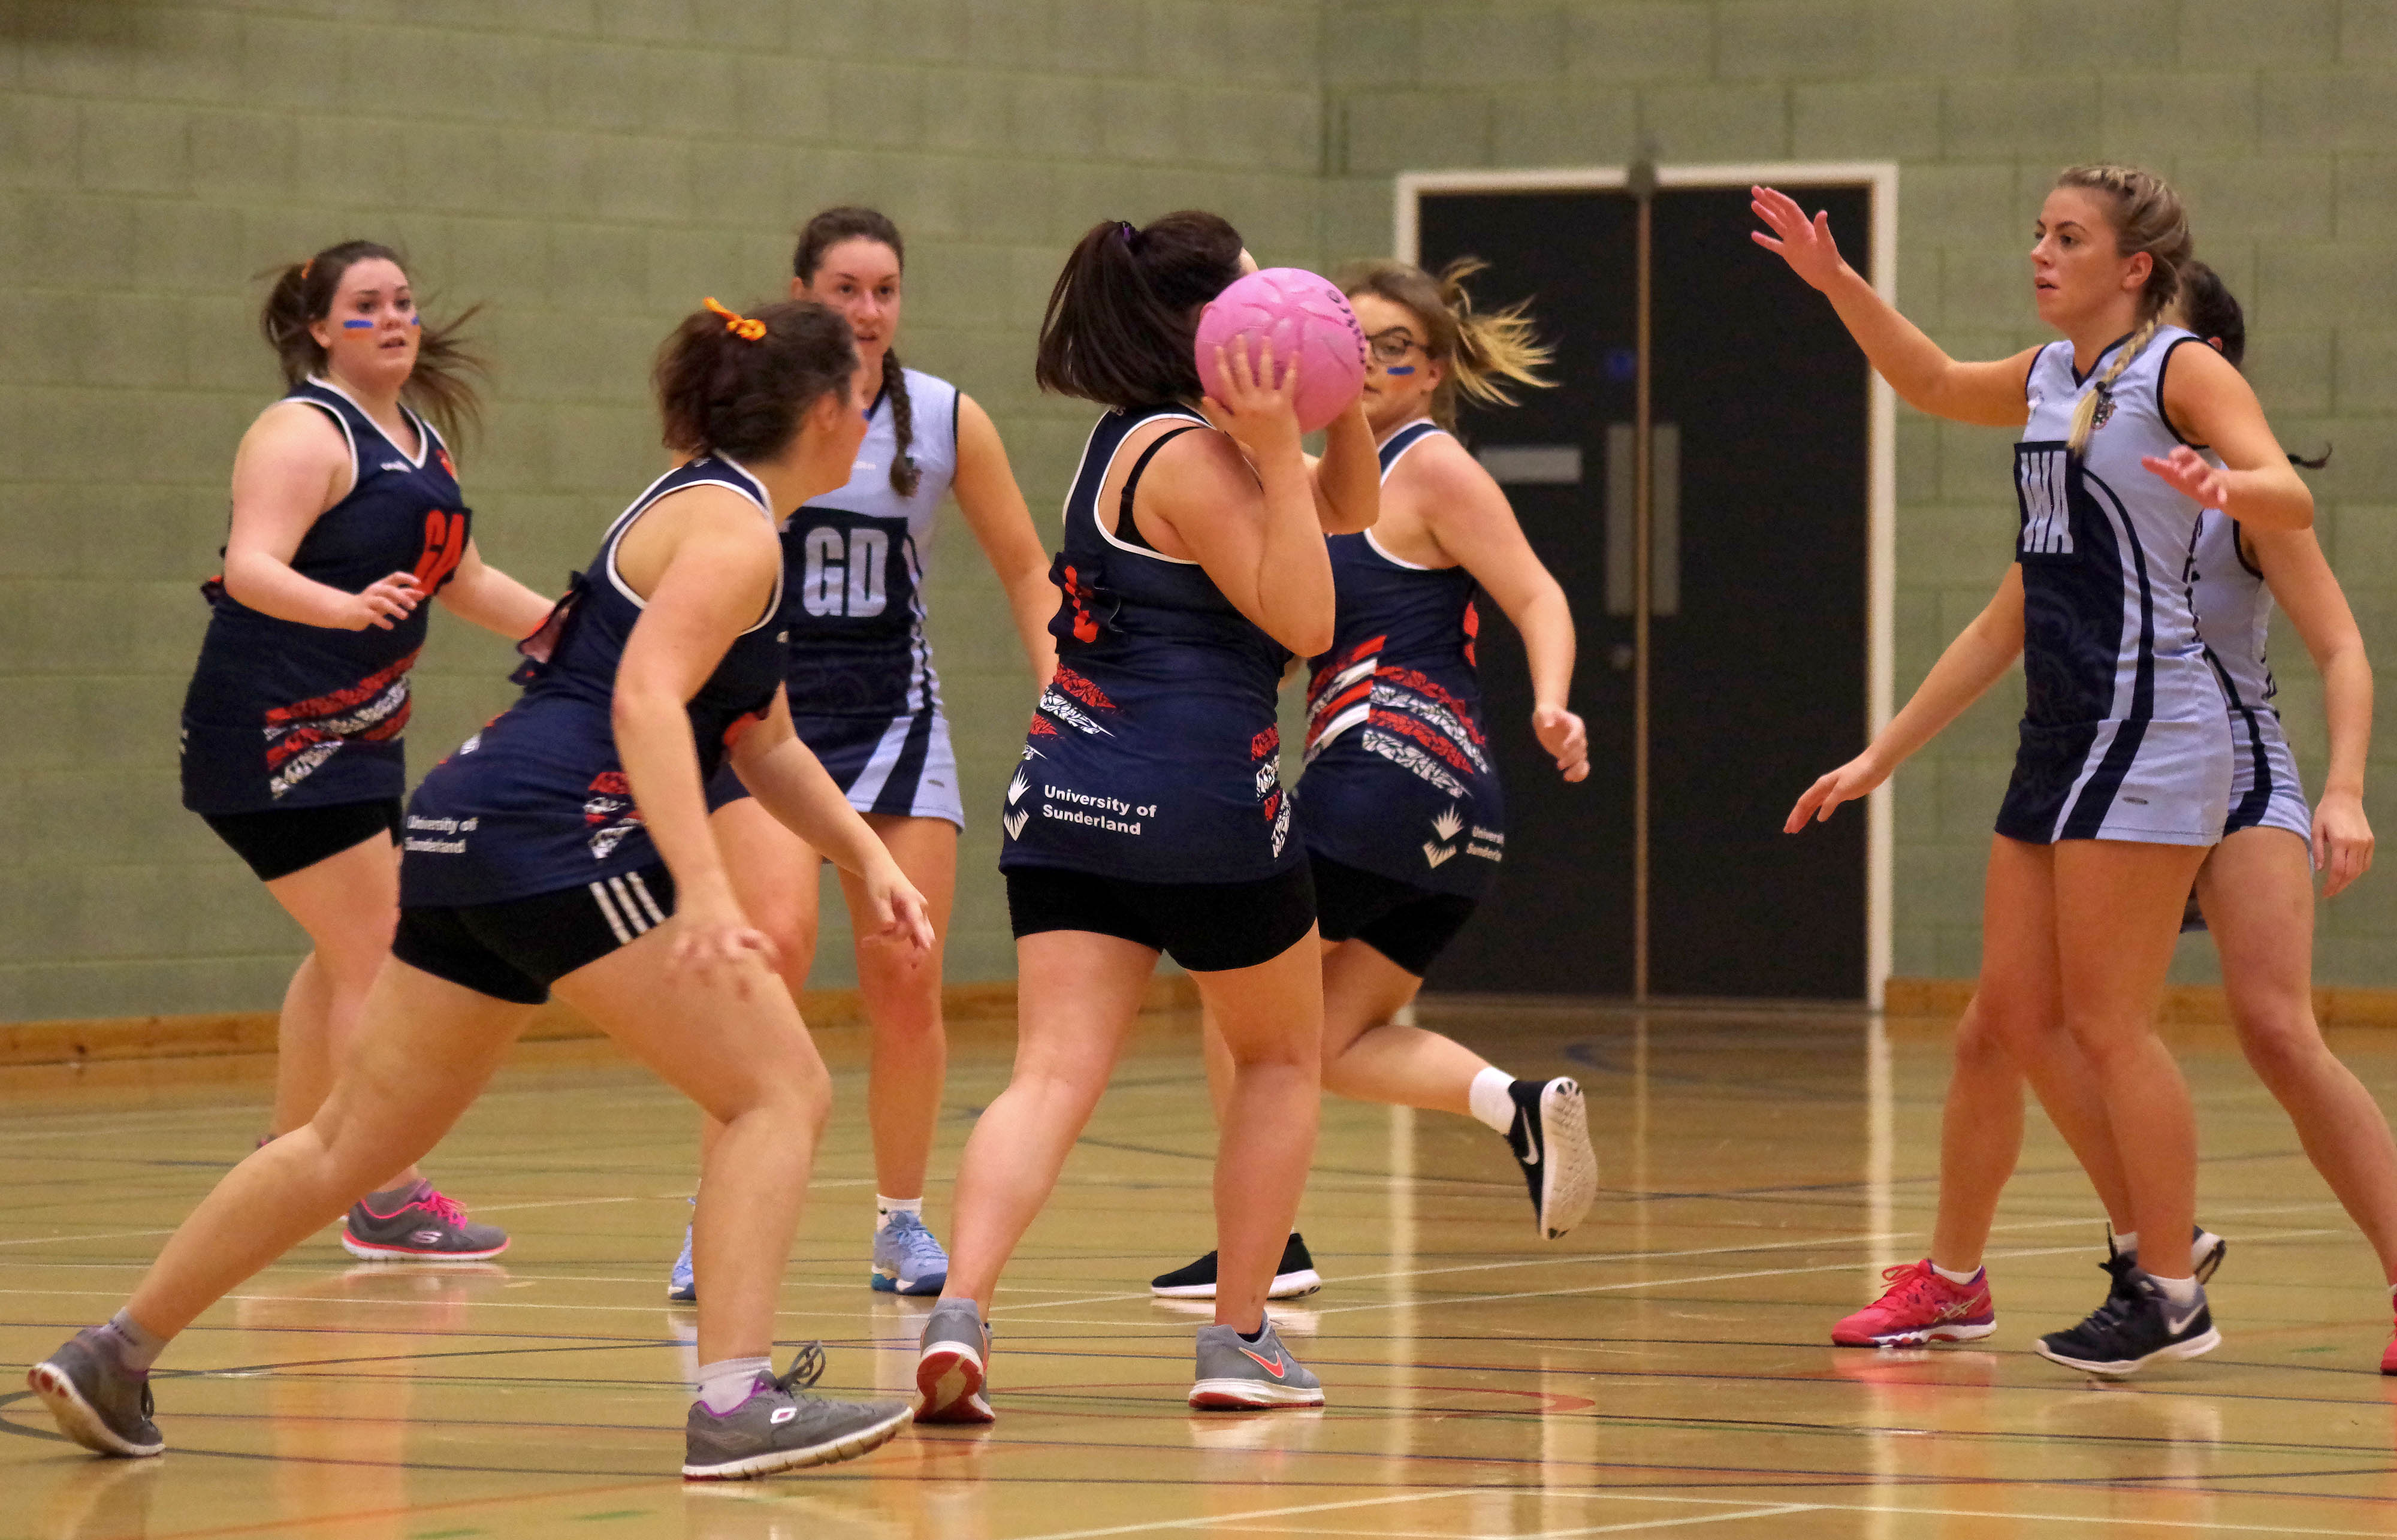 Clash of the Minsters netball